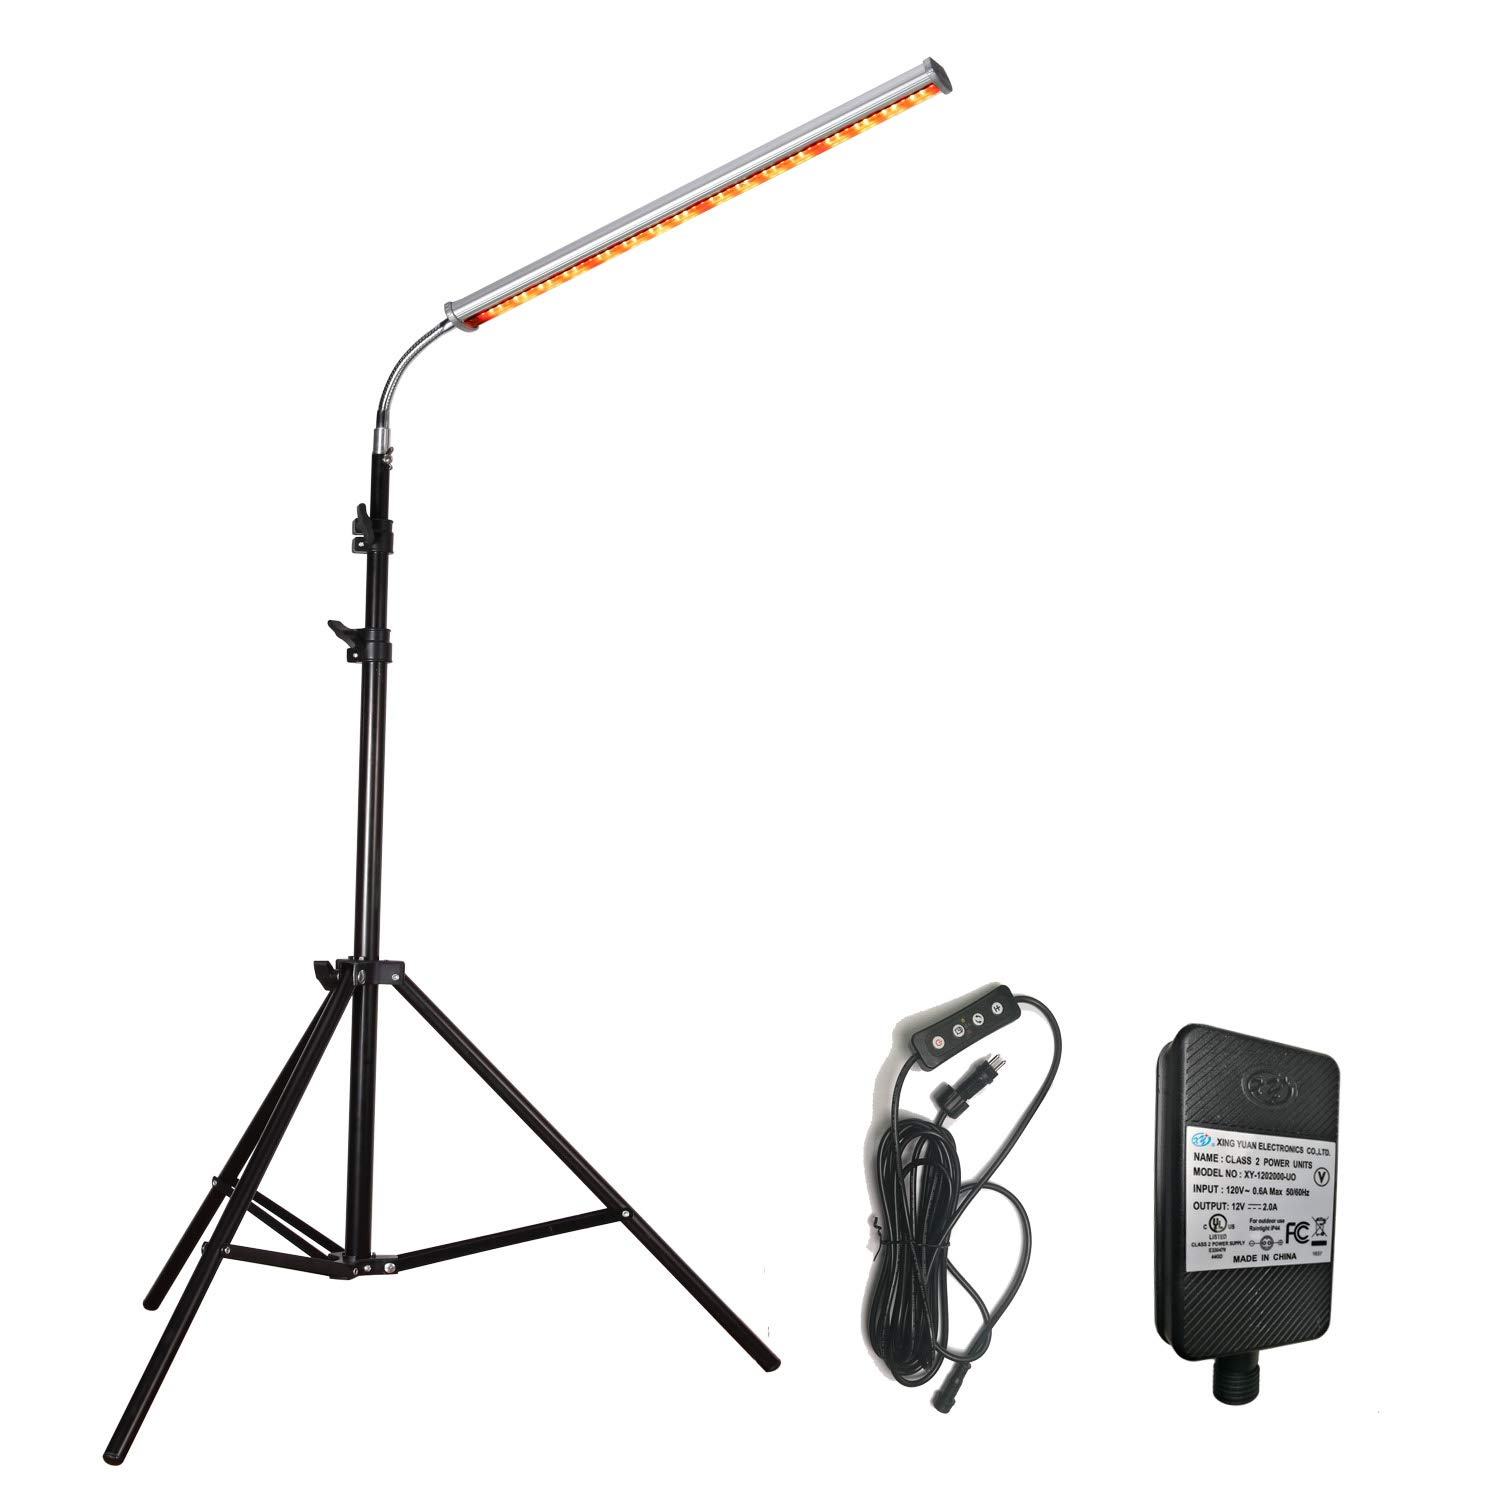 Floor Lamp LED Grow Light, Auto Turn On Timing Plant Light with Sun-Like Spectrum 3 Lighting Modes and 5 Levels of Brightness Selectable, Professional for Houseplants Seedling Growing Bloom Fruiting by DOMMIA